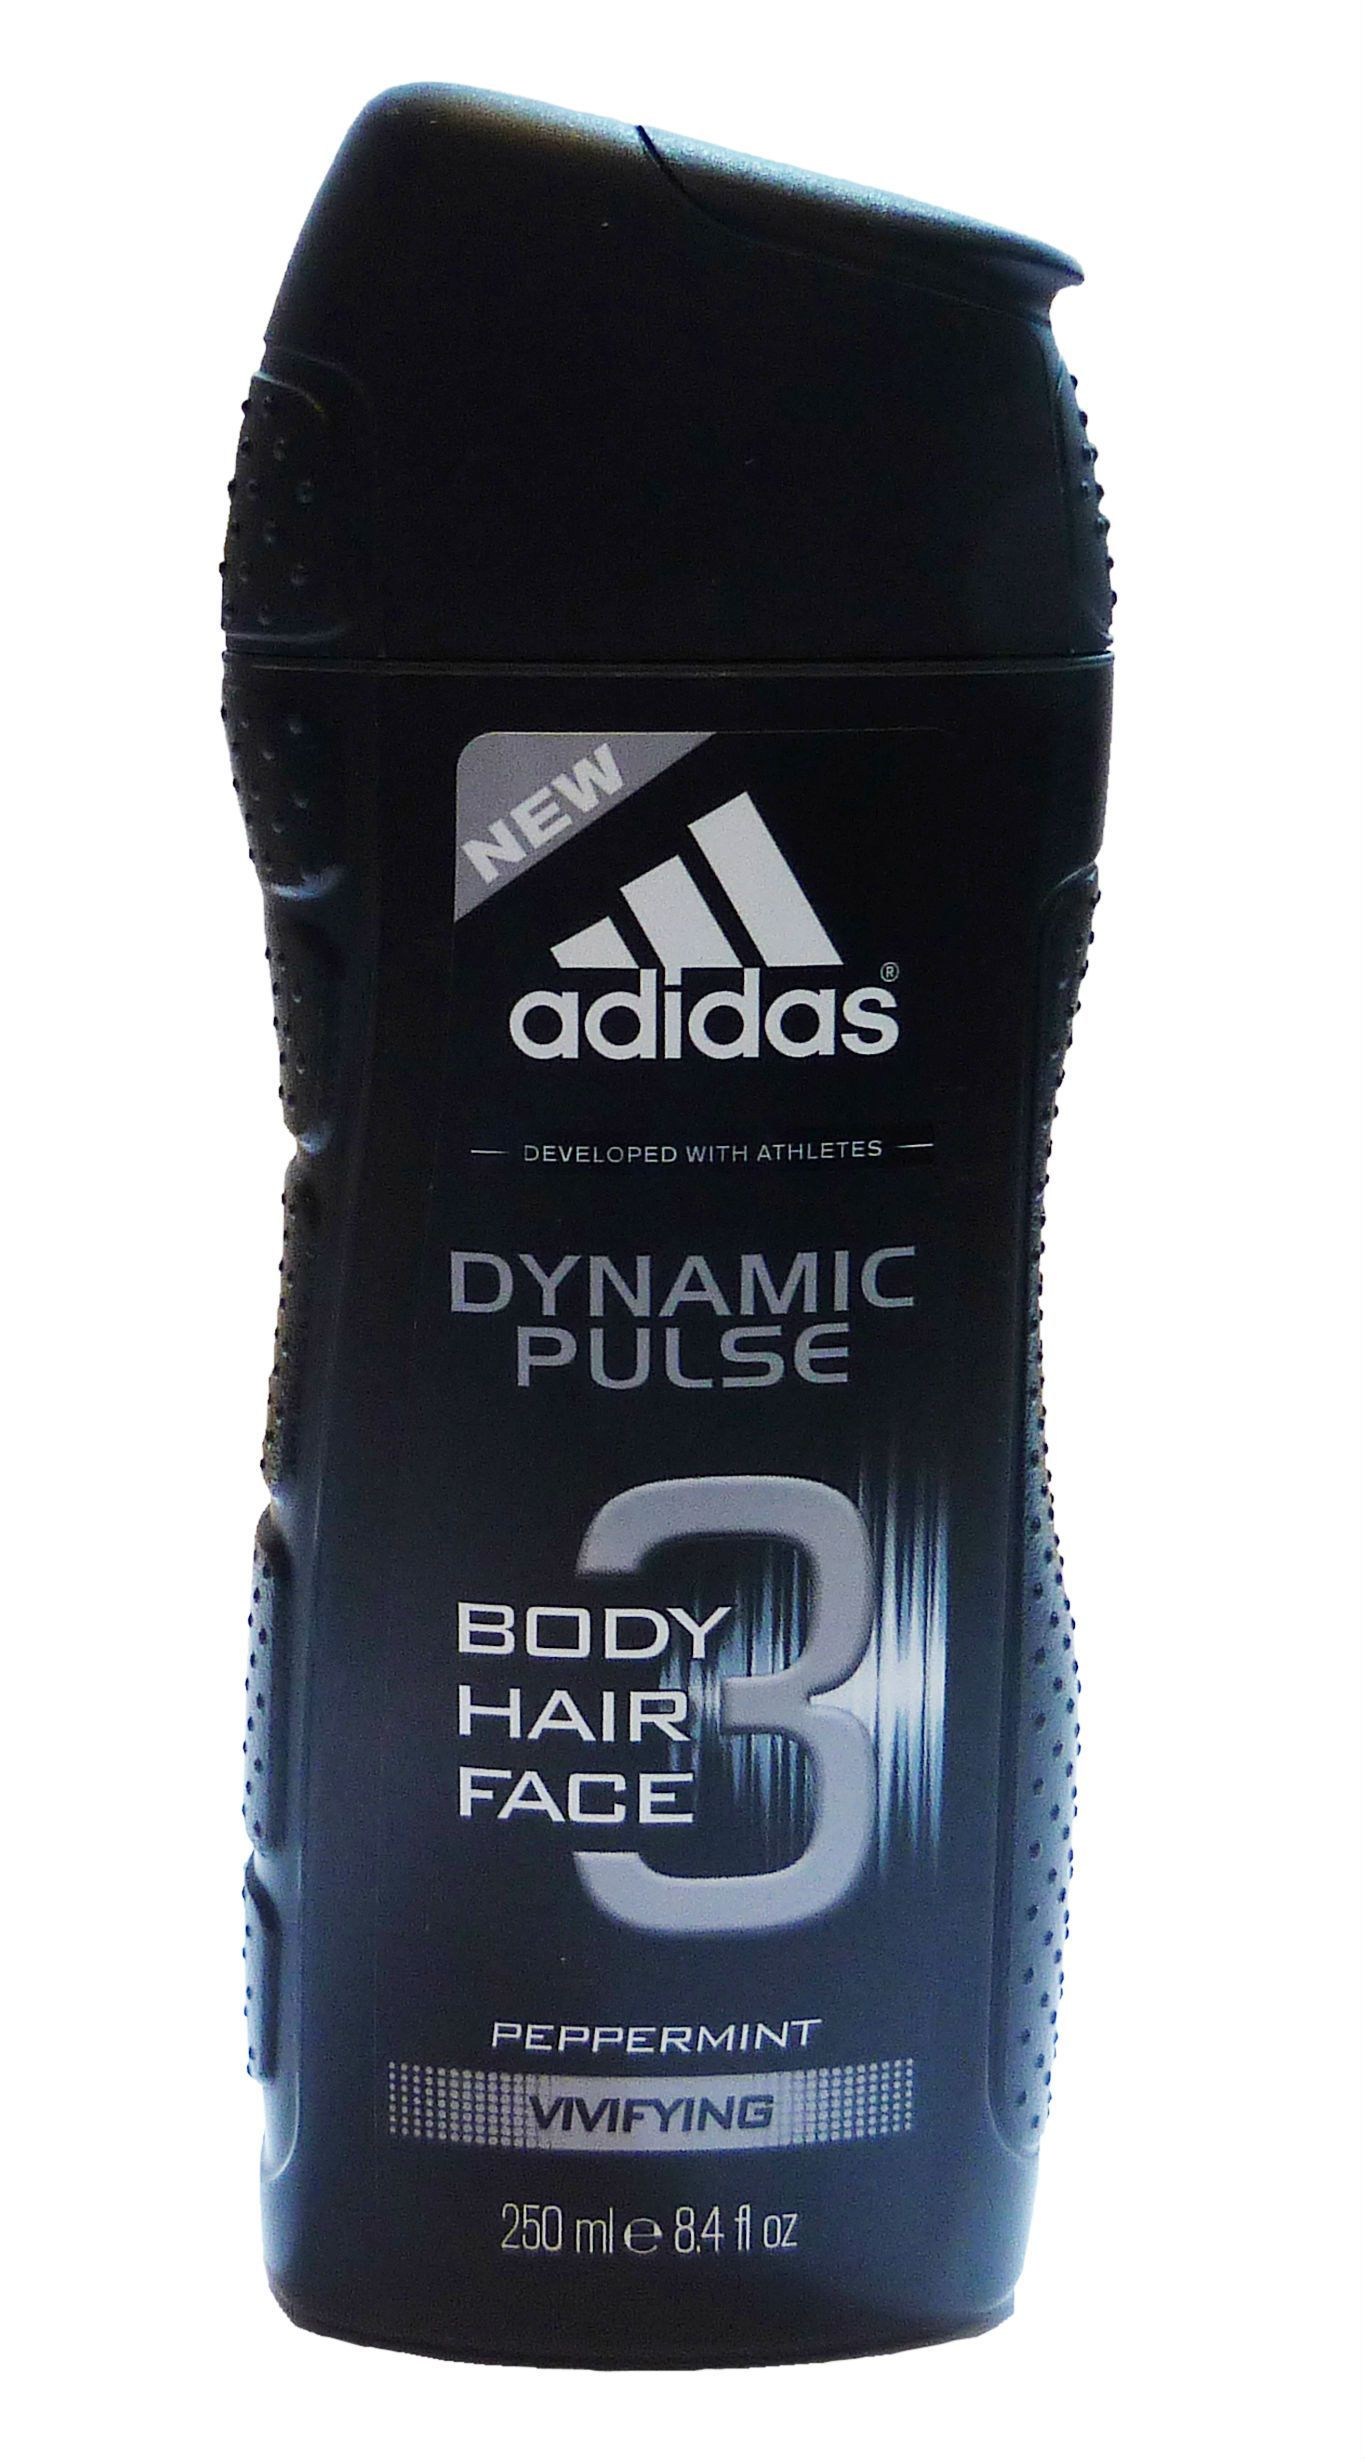 Adidas Dynamic Pulse For Men By Coty Hair Body Face Wash 84 Oz